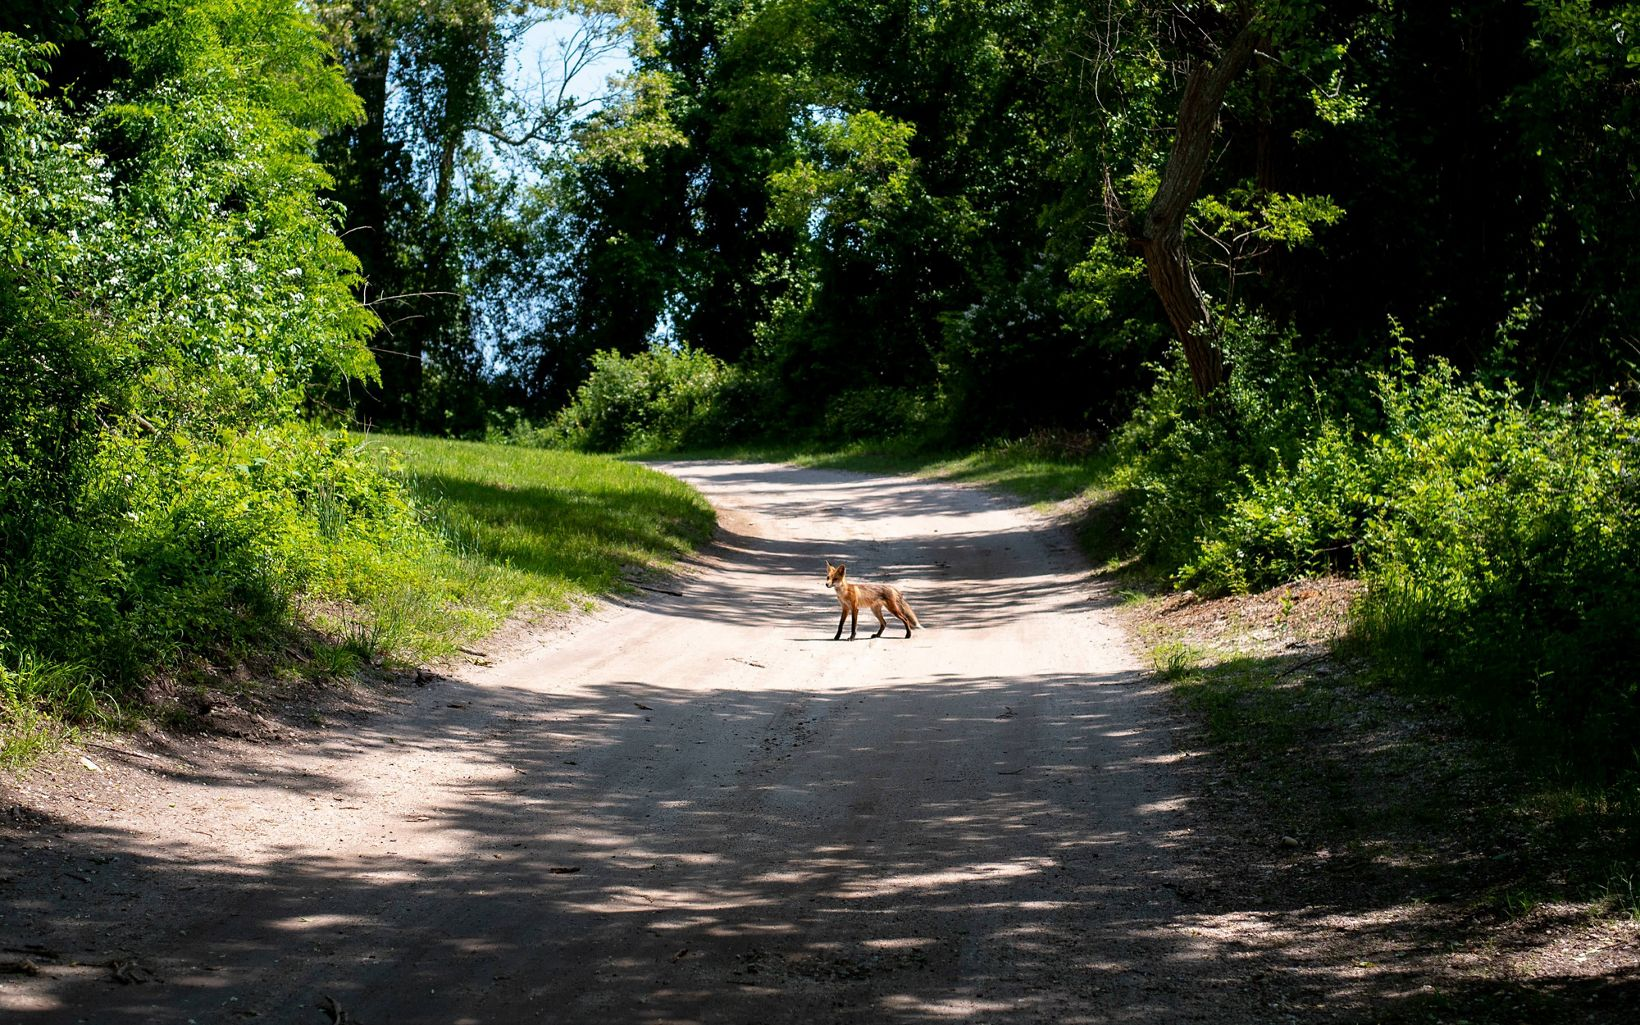 A small, brown and black fox stands in the sun in the middle of a gravel road.